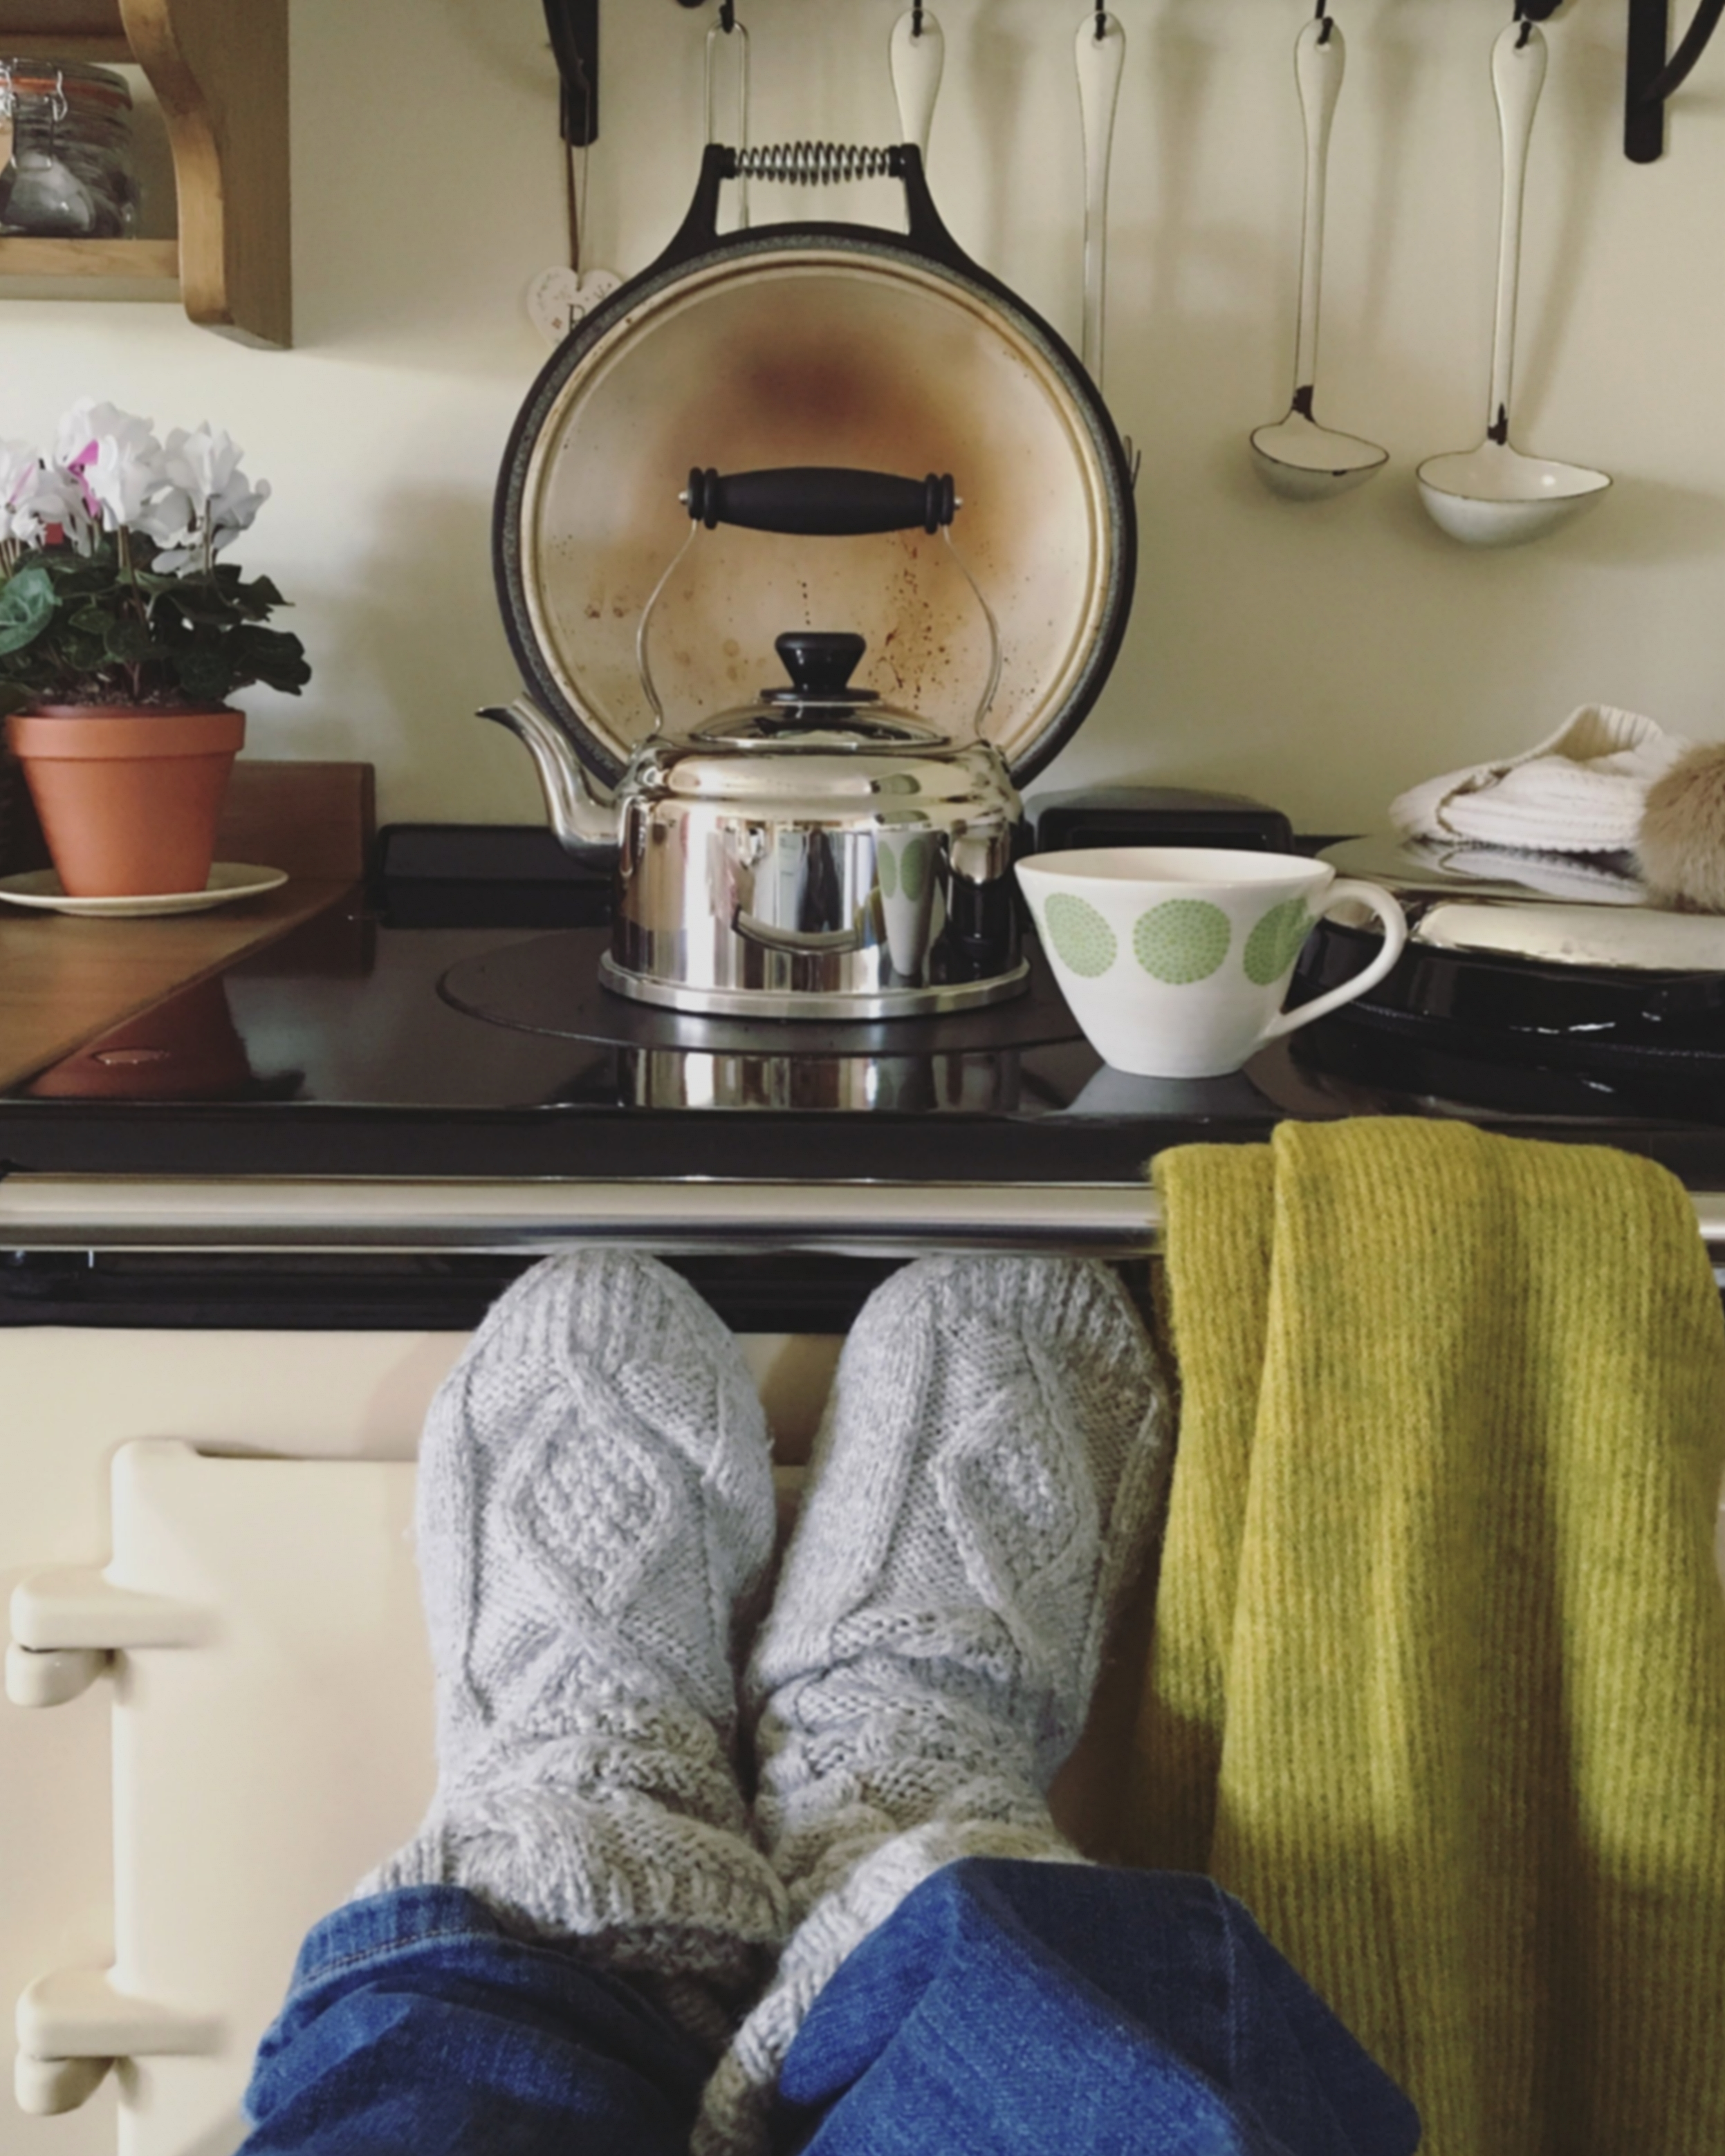 Warming up my feet whilst waiting for the kettle to boil.